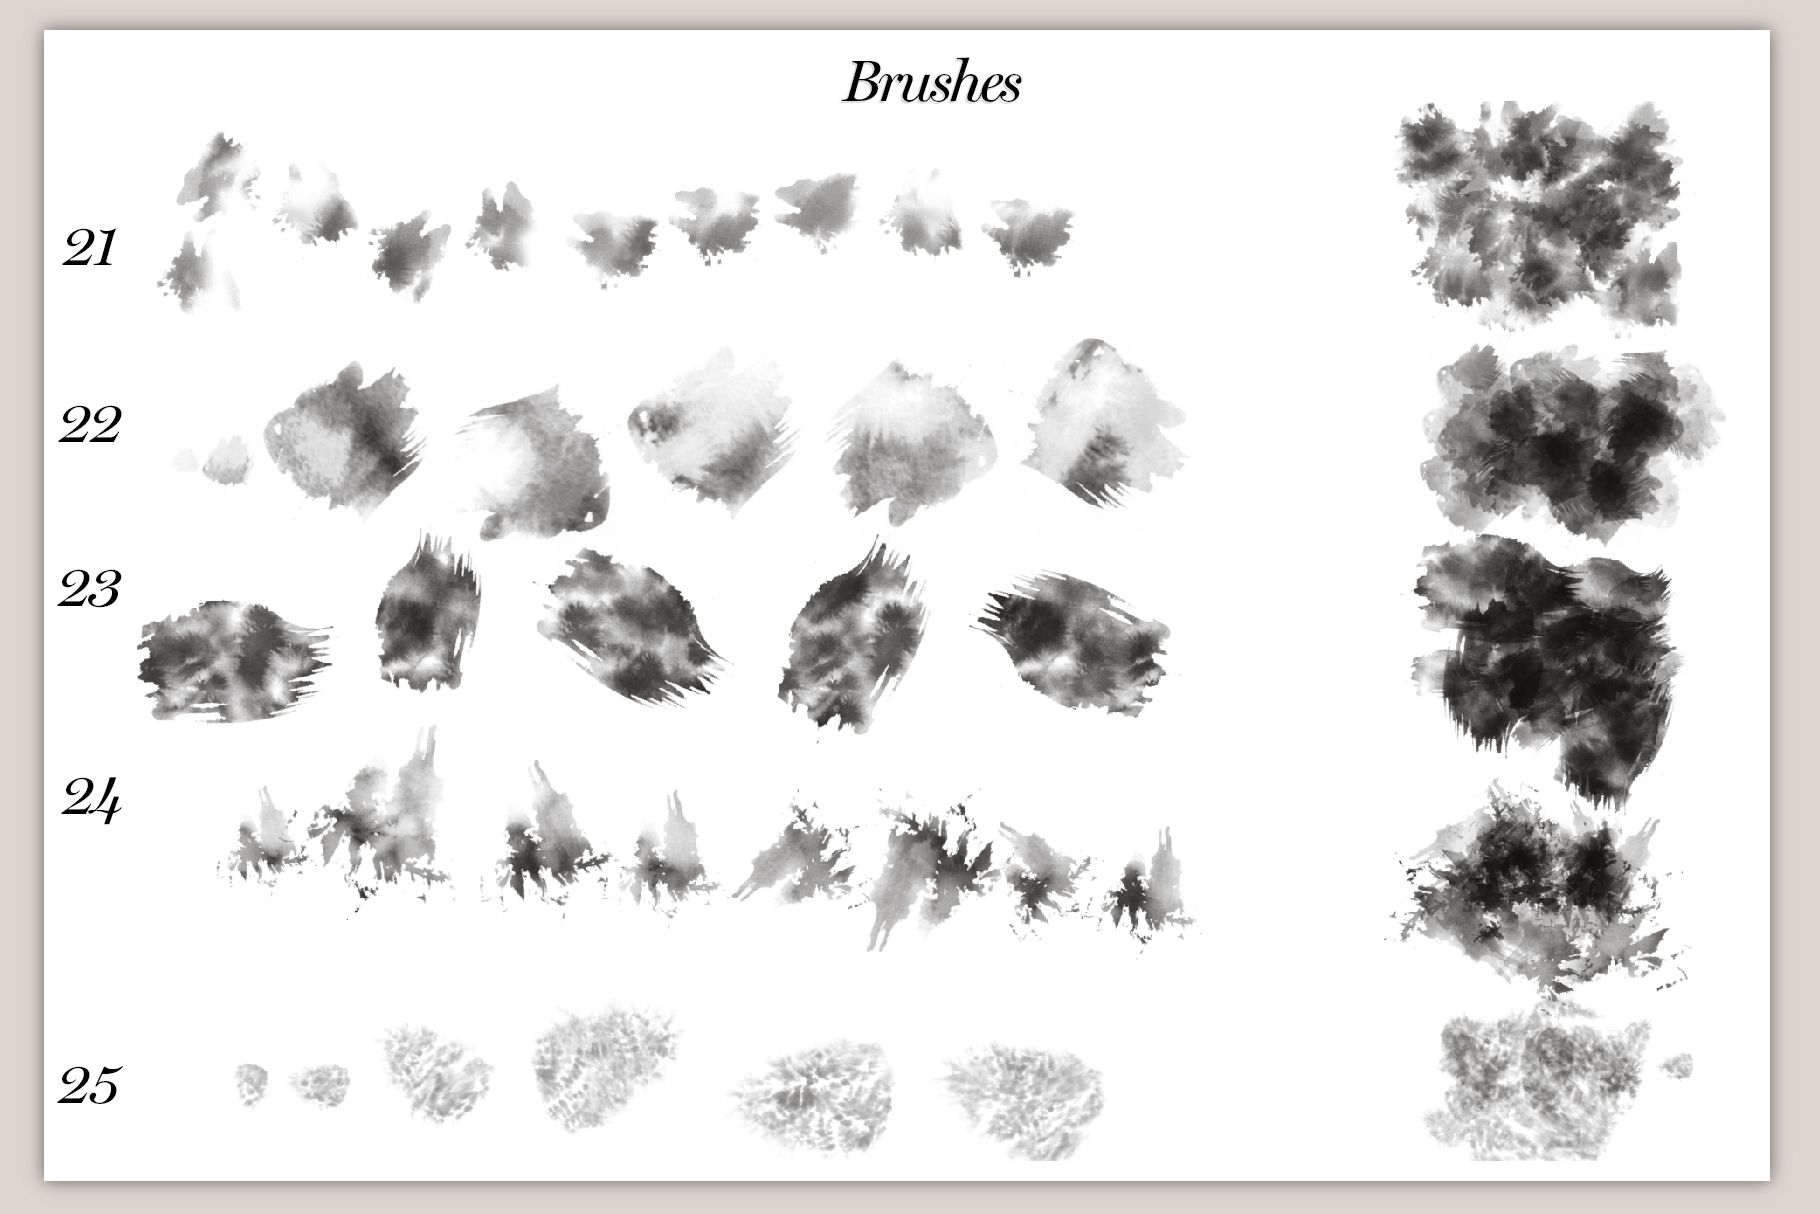 40 Artistic Painting Brushes for Procreate example image 7